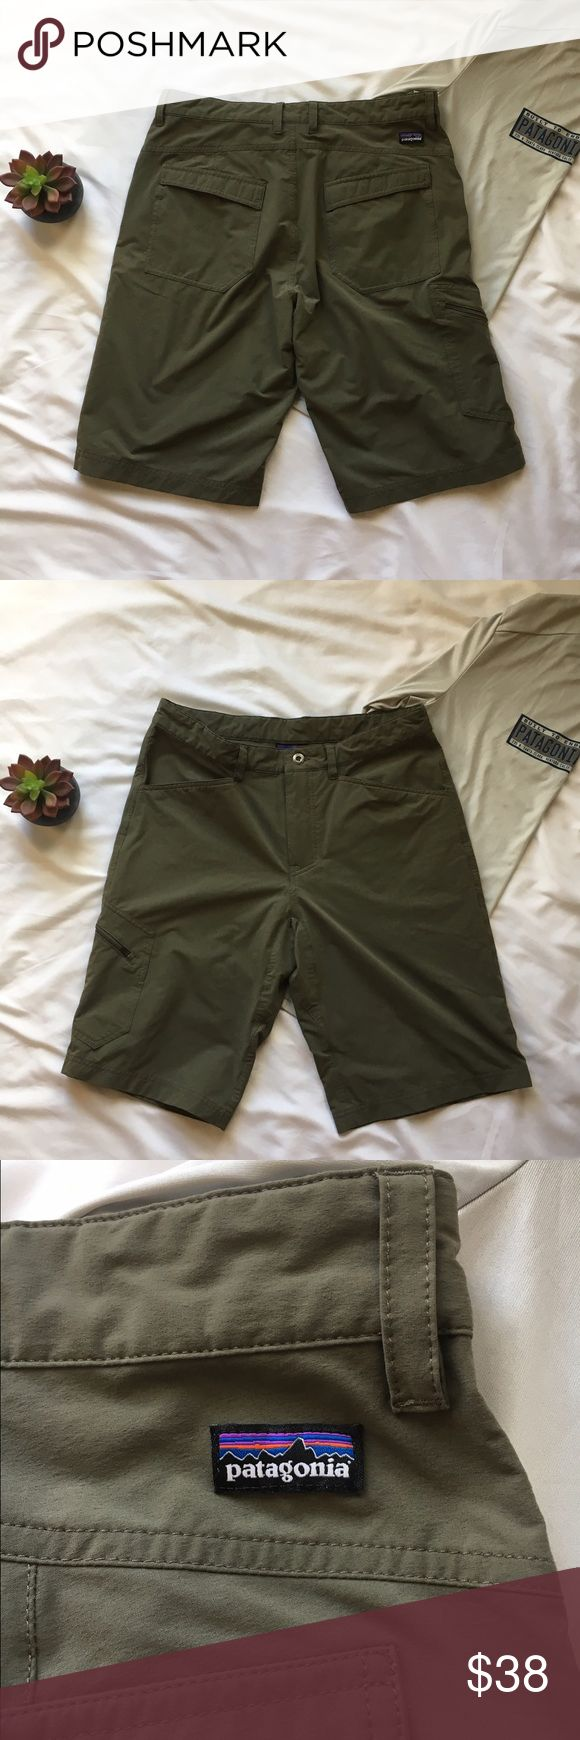 Patagonia Quandary Men's Shorts Excellent Condition, no signs of wear, like new.  10 inch inseam, 96% Nylon and 4% spandex with water repellent finish and UPF 50 sun protection. Great for the outdoors. Patagonia Shorts Cargo